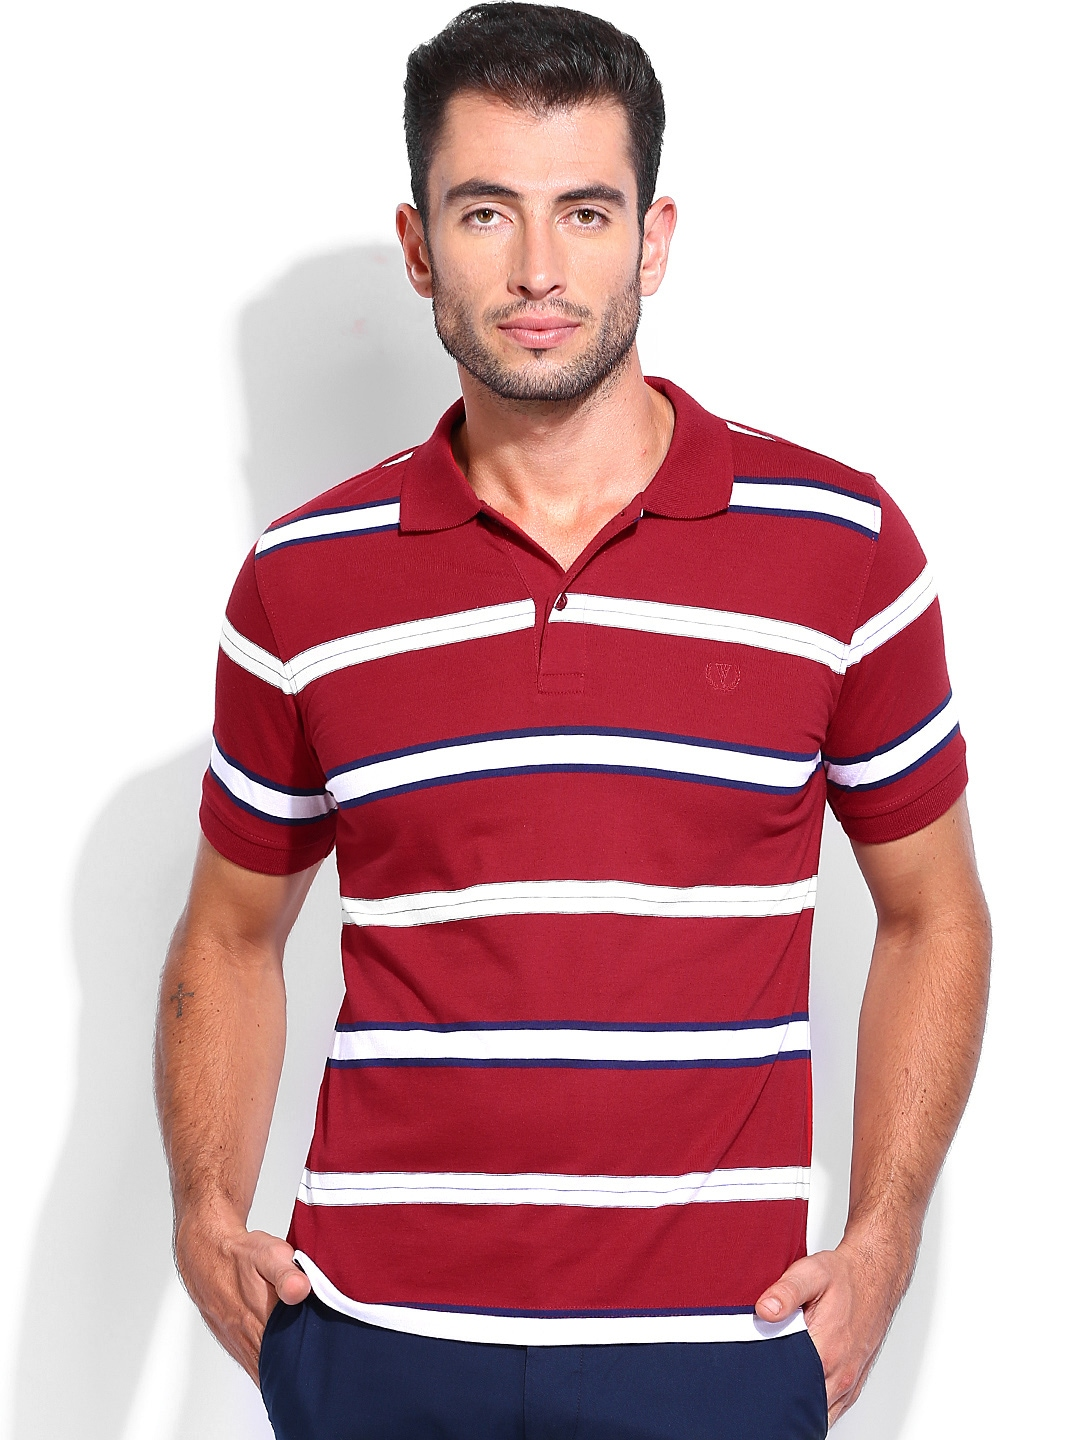 Myntra van heusen men red white striped polo t shirt for Red white striped polo shirt